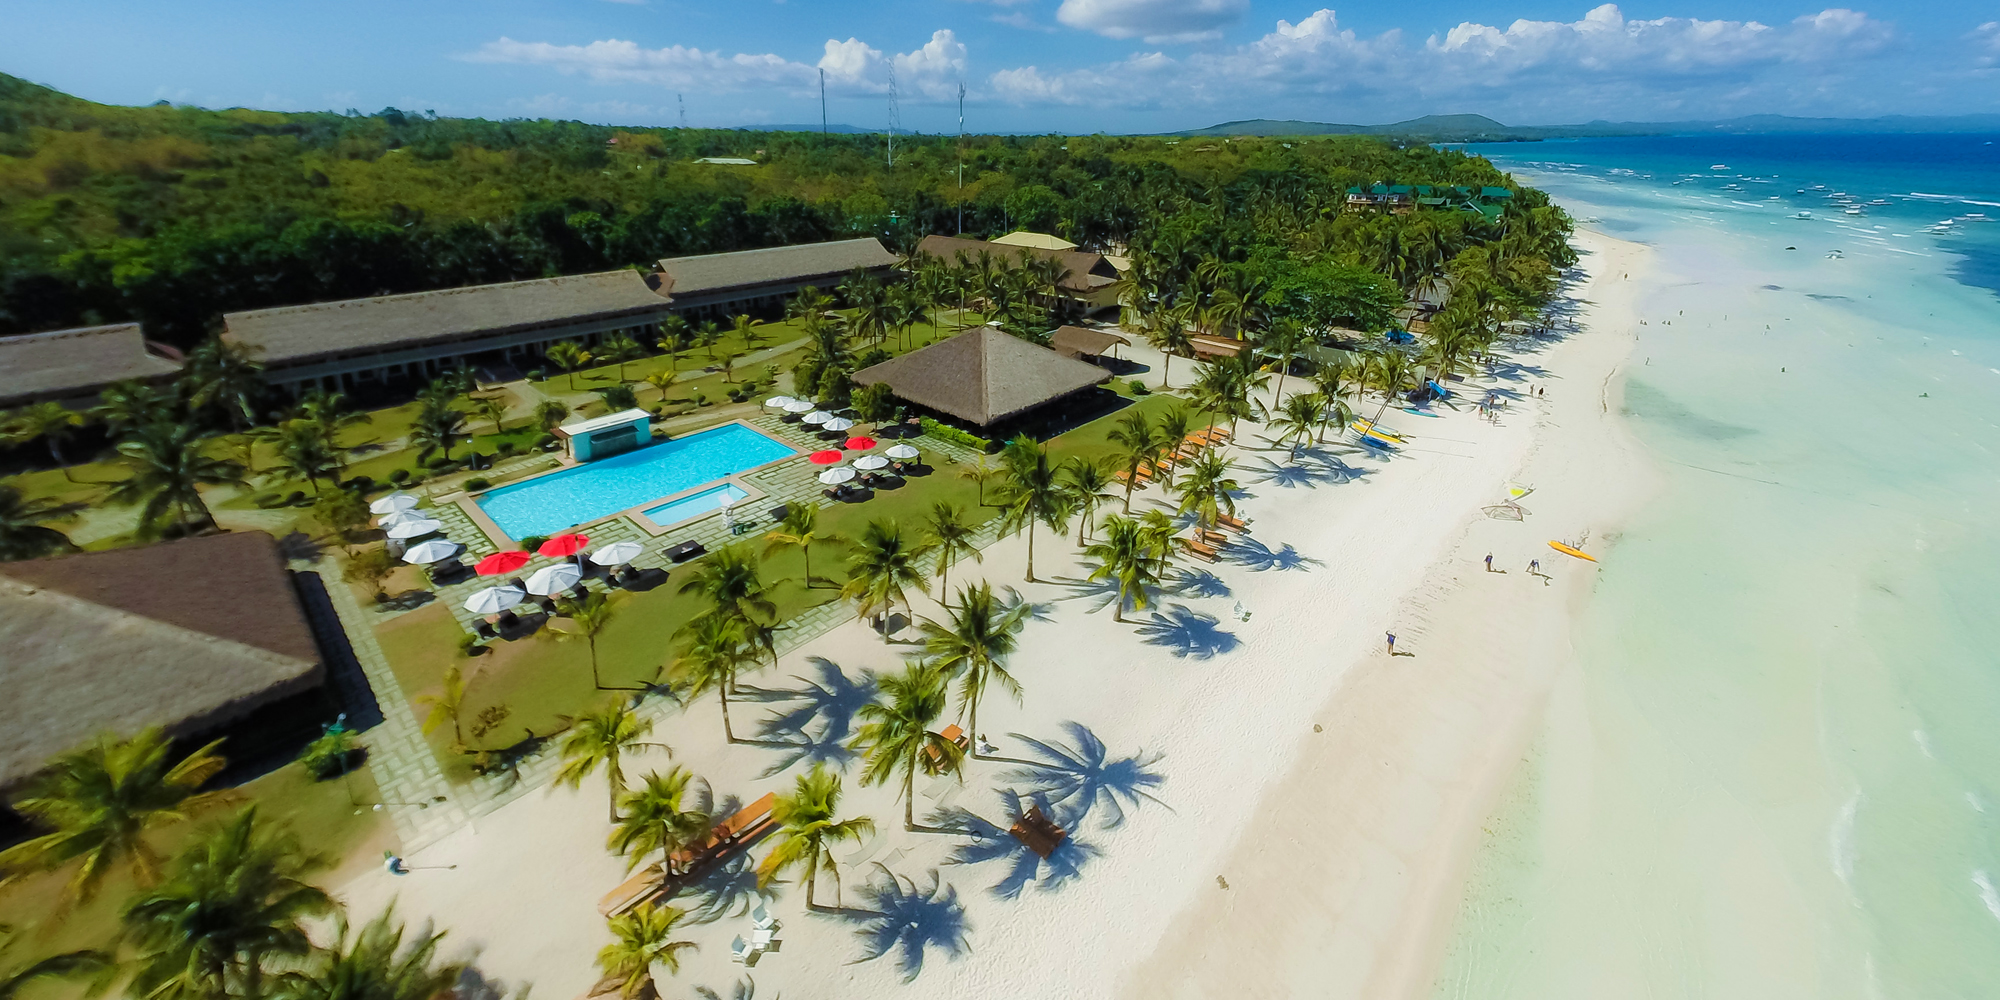 Language In 45 And 47 Stella Street: Bohol Beach Club Resort In Panglao Island, Bohol, Philippines